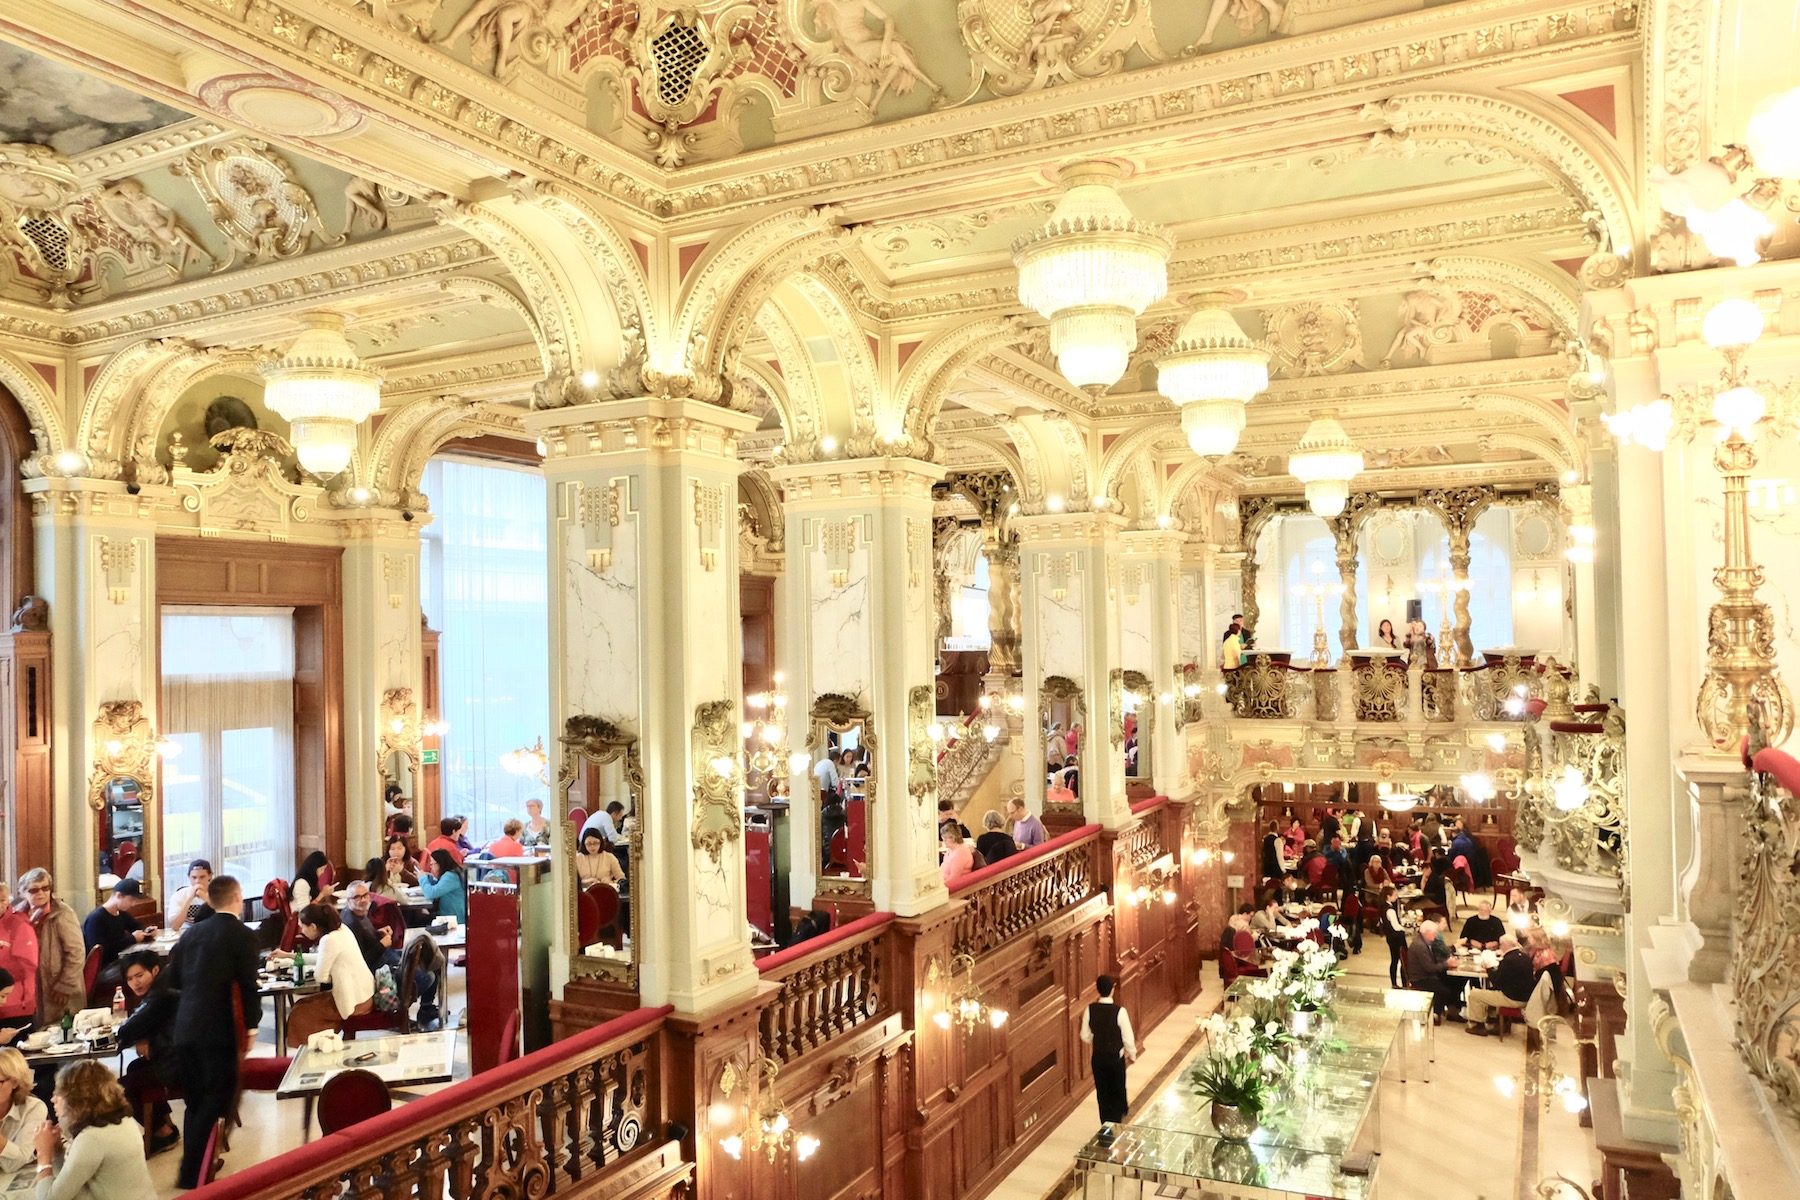 New York Cafe Budapest - Michelle Franc-LeeMichelle Franc-Lee